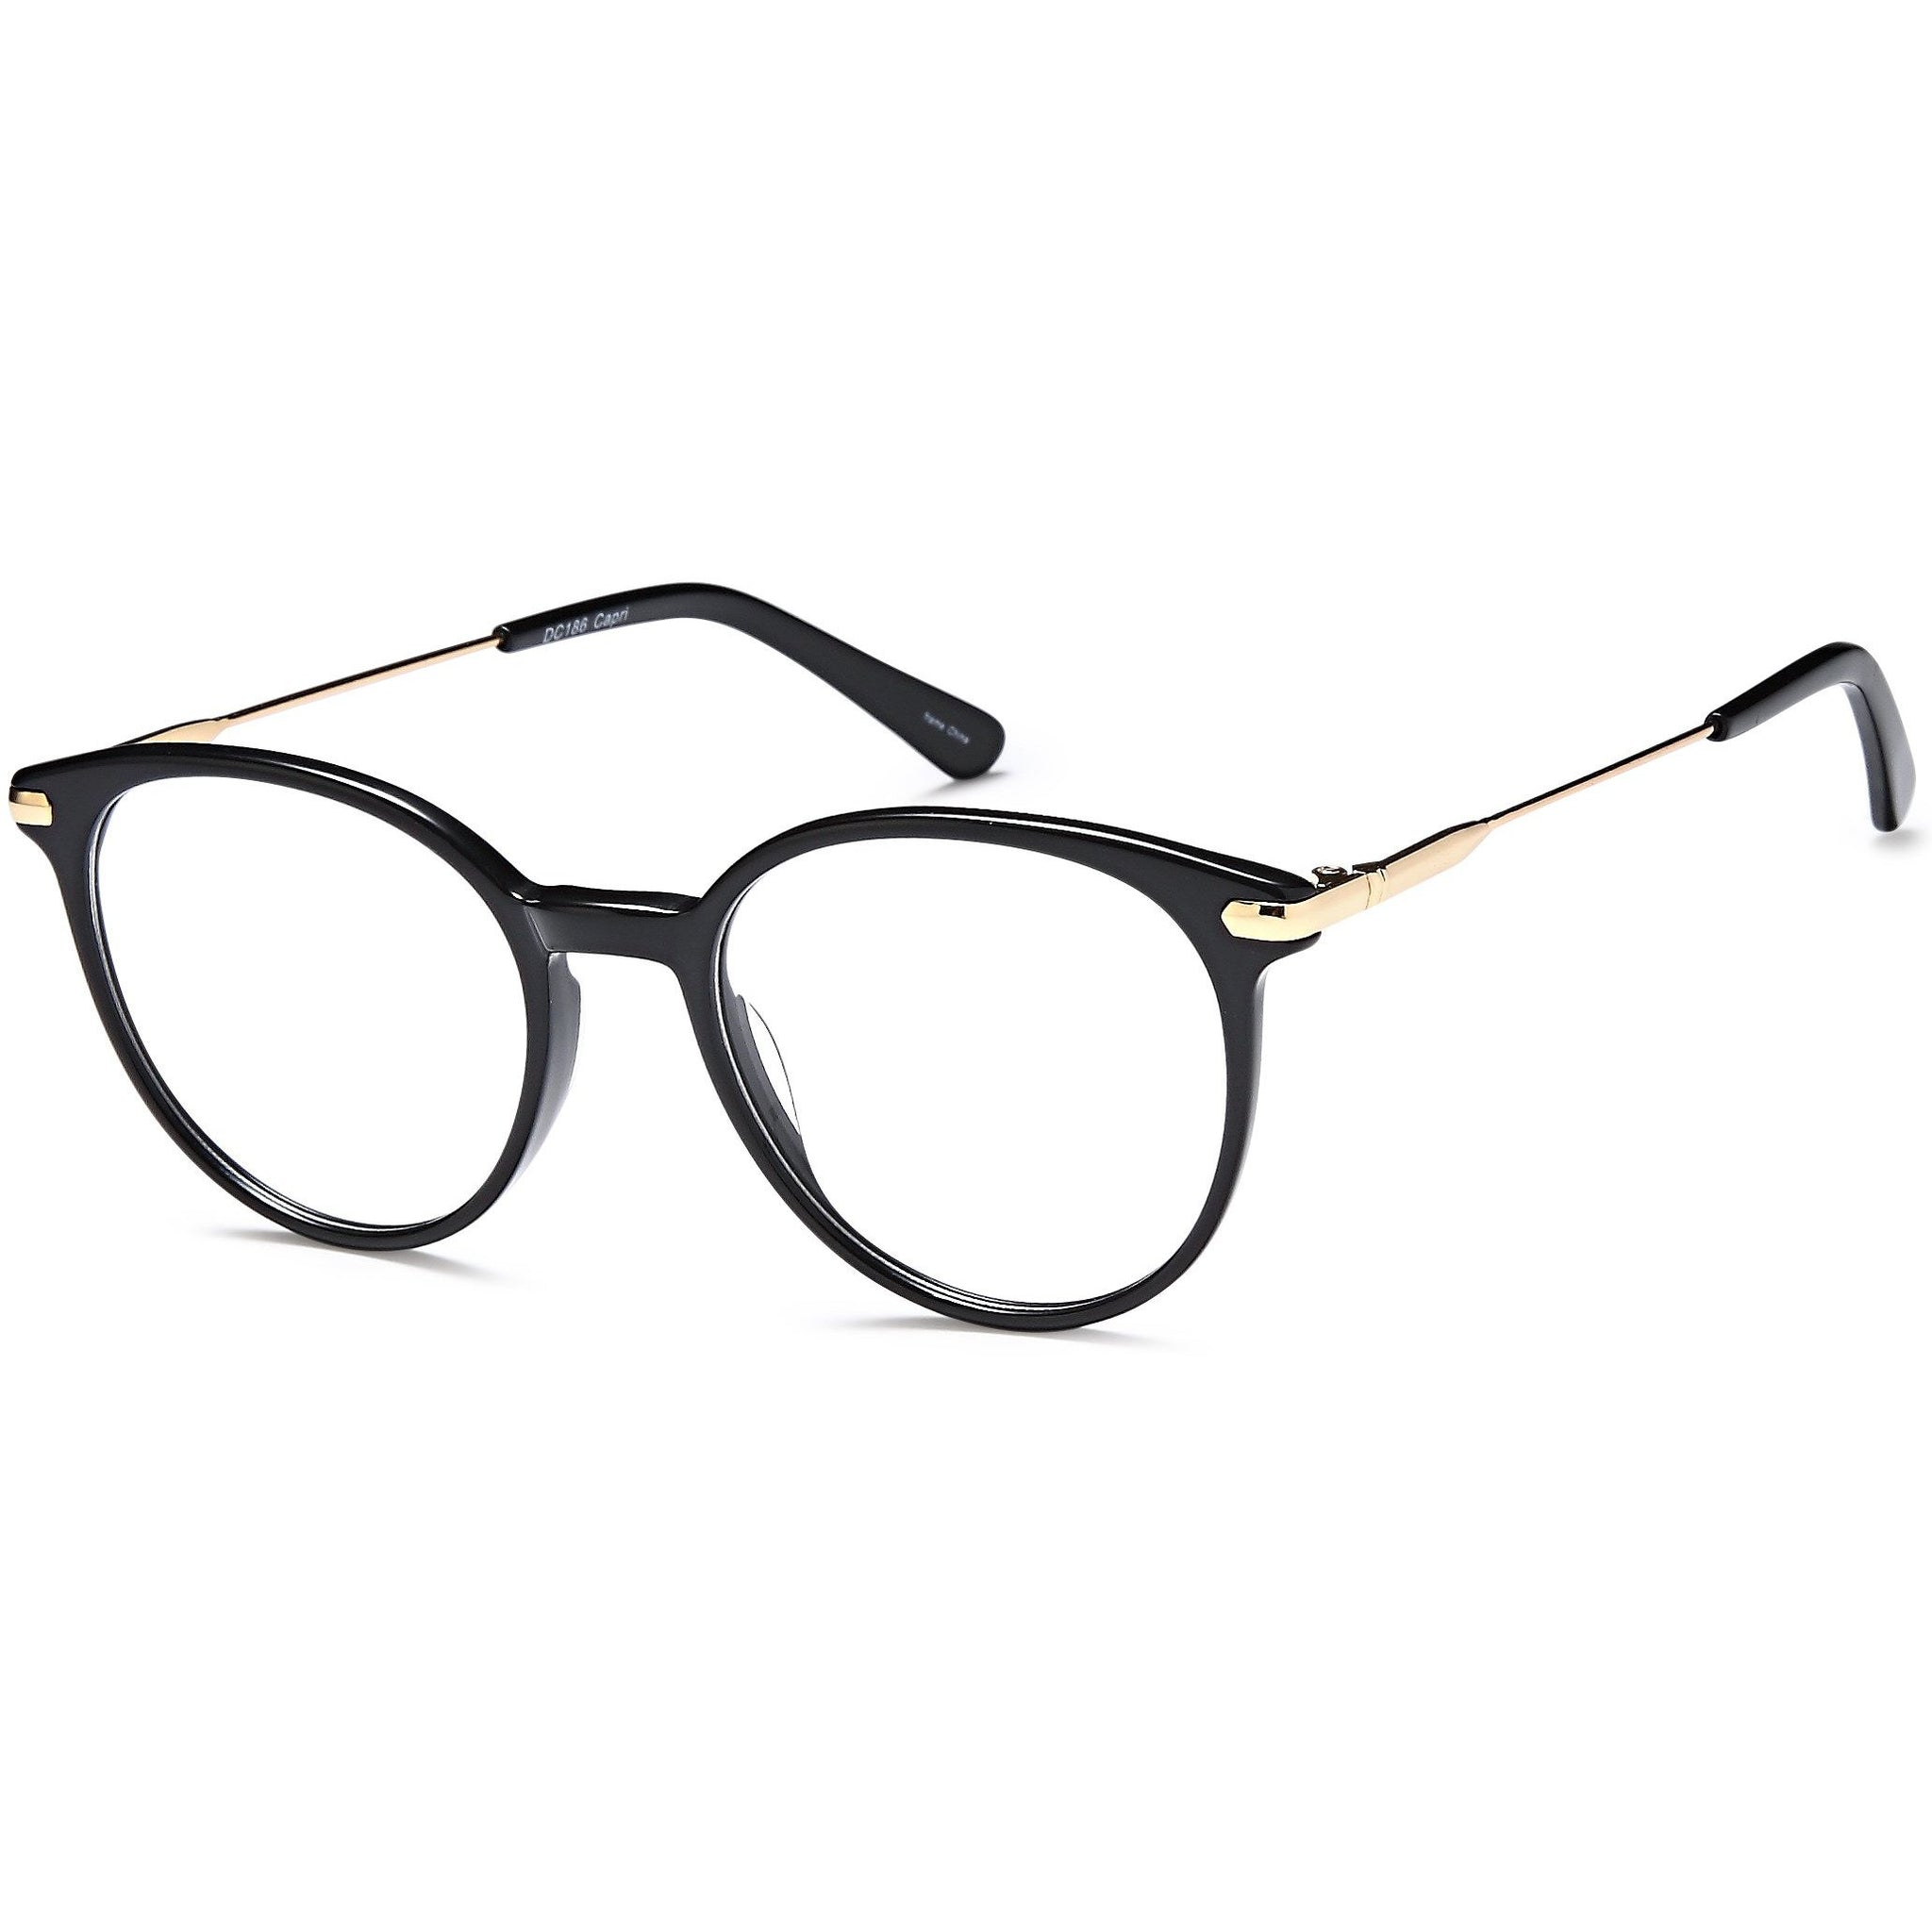 Leonardo Prescription Glasses DC 186 Eyeglasses Frame